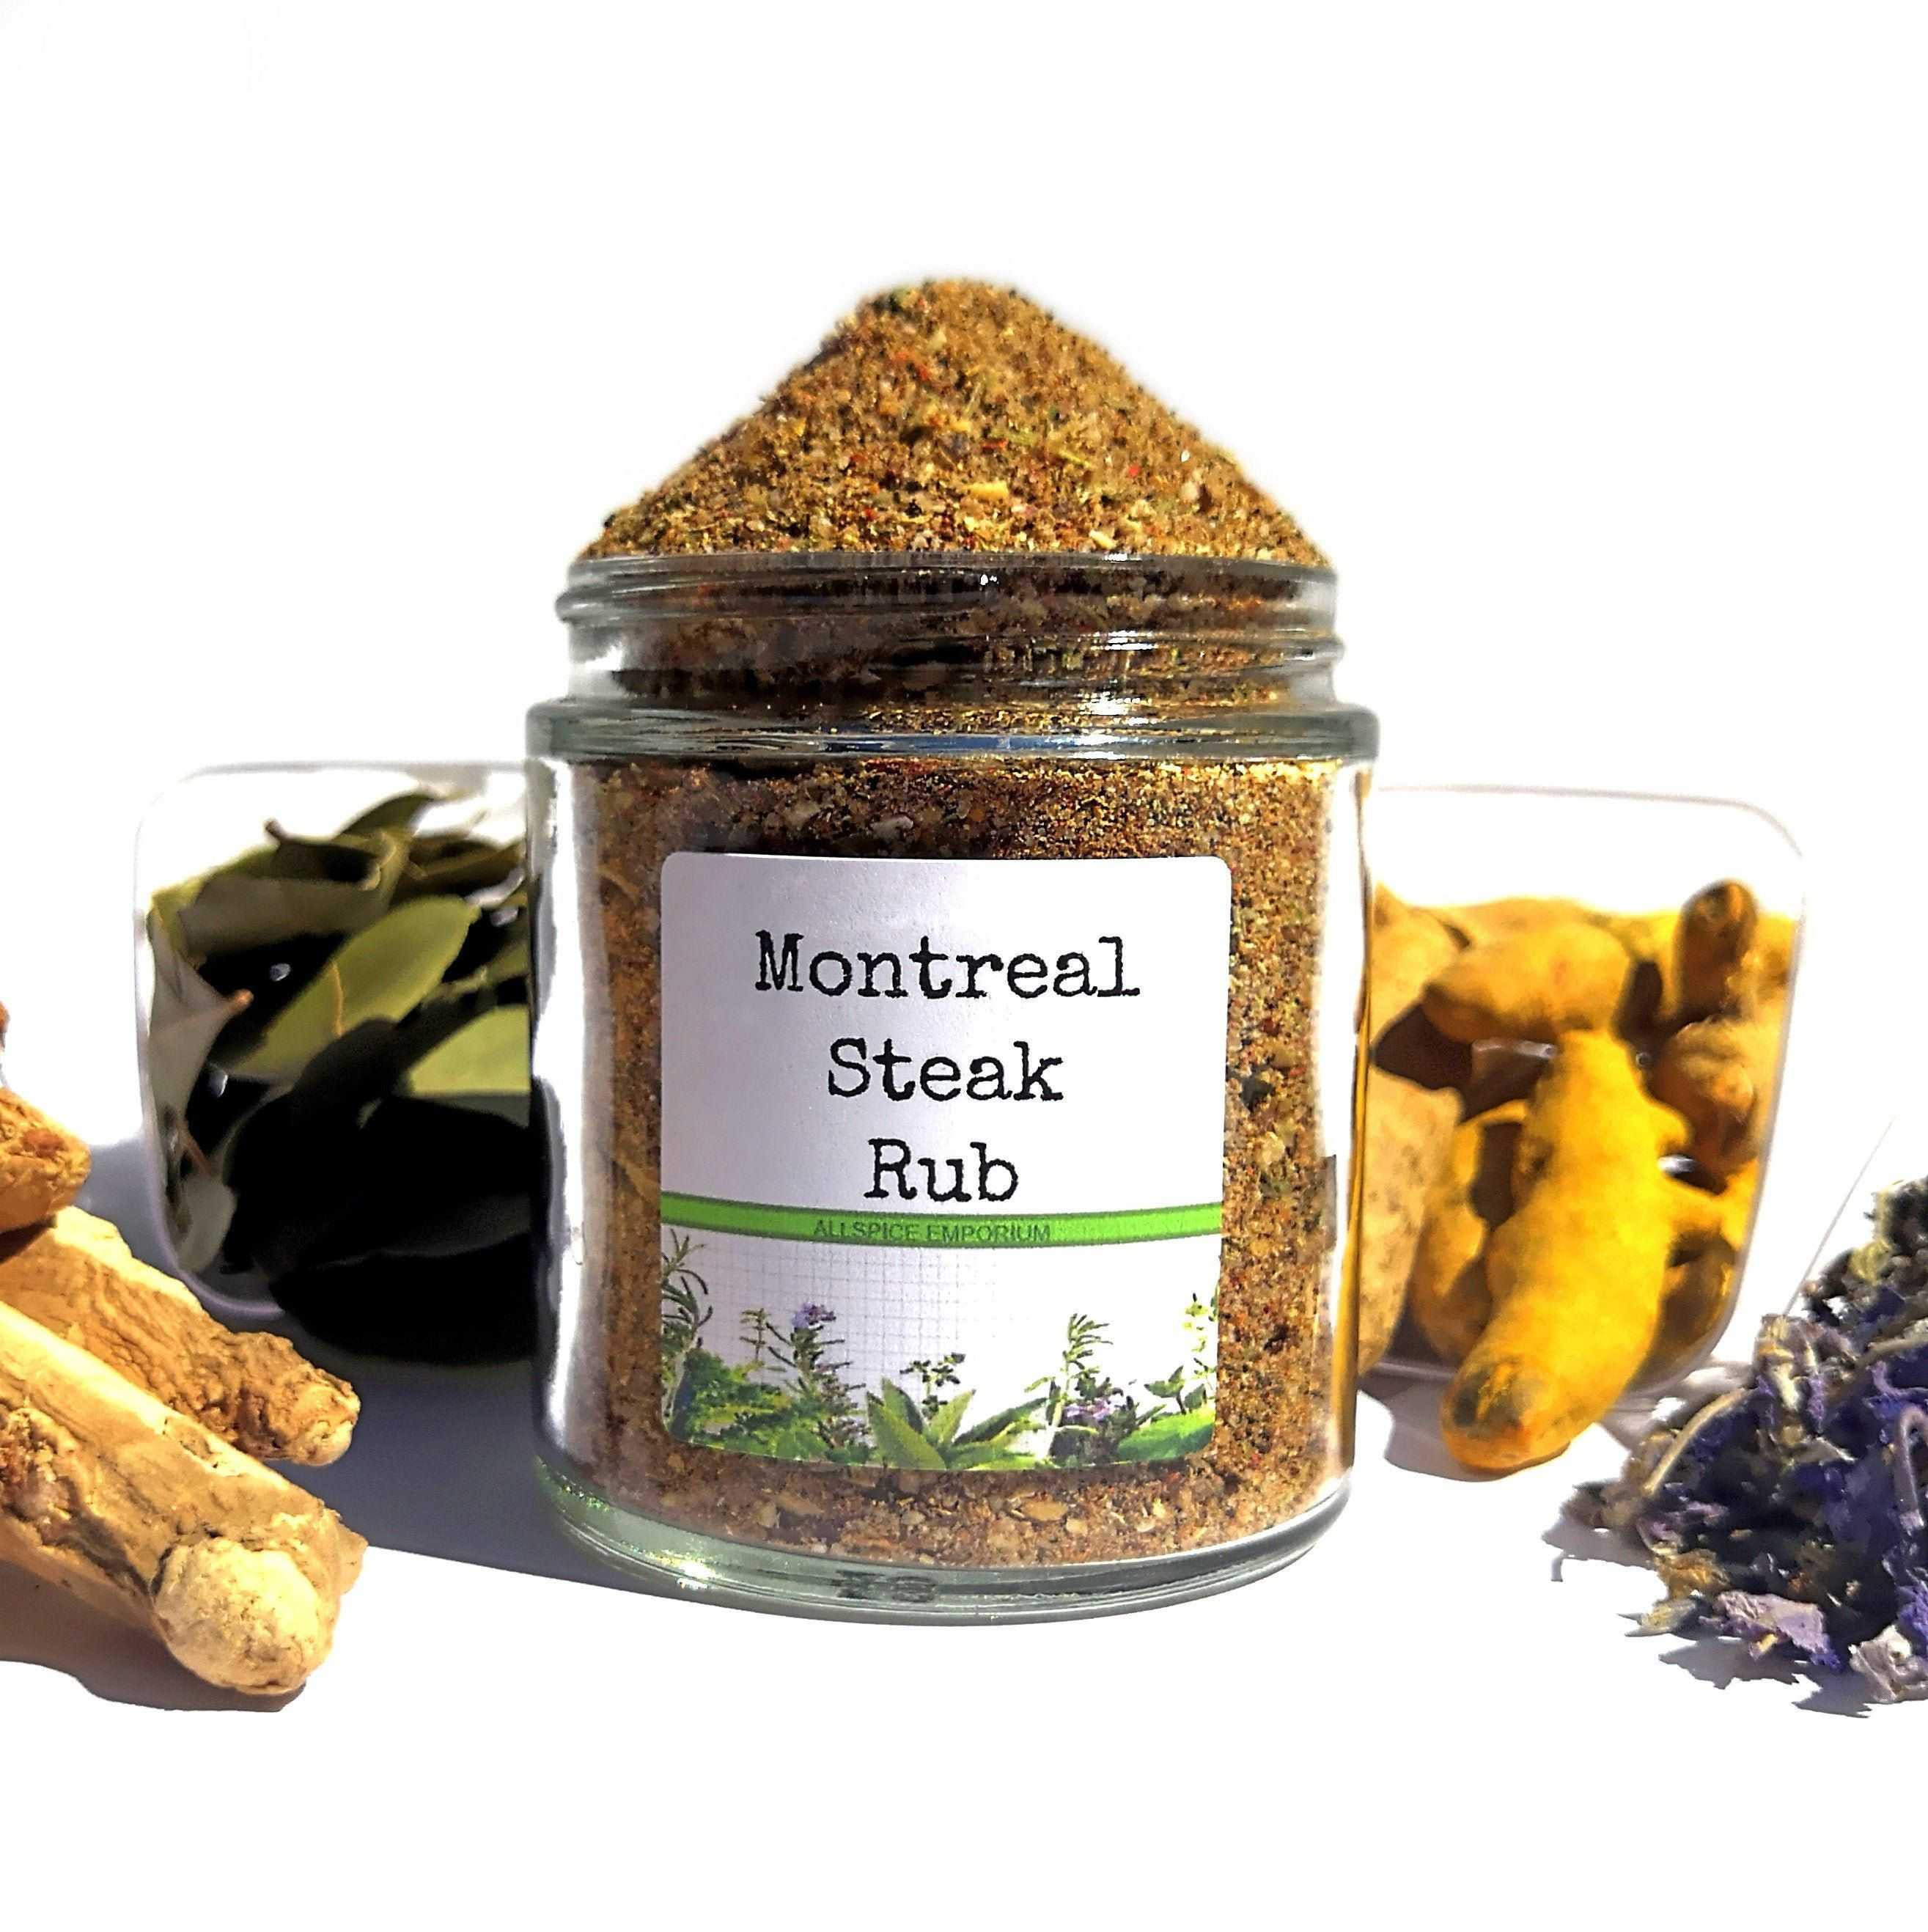 Montreal Steak Rub, Dry Rub, Gourmet Spices, Gluten Free, No MSG #steakrubs Montreal Steak Rub, Dry Rub, Gourmet Spices, Gluten Free, No MSG #steakrubs Montreal Steak Rub, Dry Rub, Gourmet Spices, Gluten Free, No MSG #steakrubs Montreal Steak Rub, Dry Rub, Gourmet Spices, Gluten Free, No MSG #steakrubs